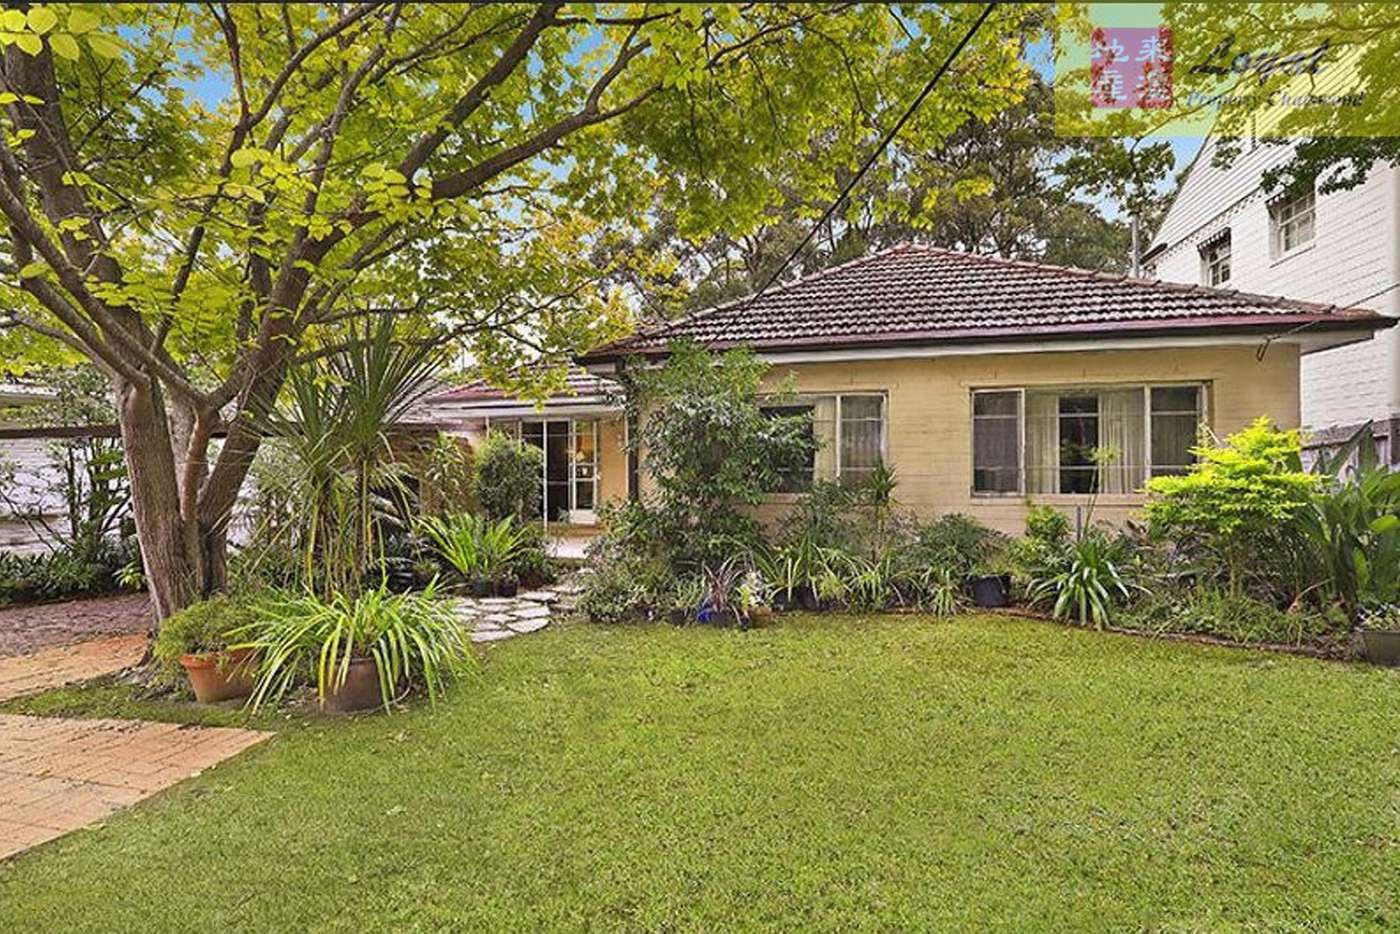 Main view of Homely house listing, 8 Cadow Street, Pymble NSW 2073